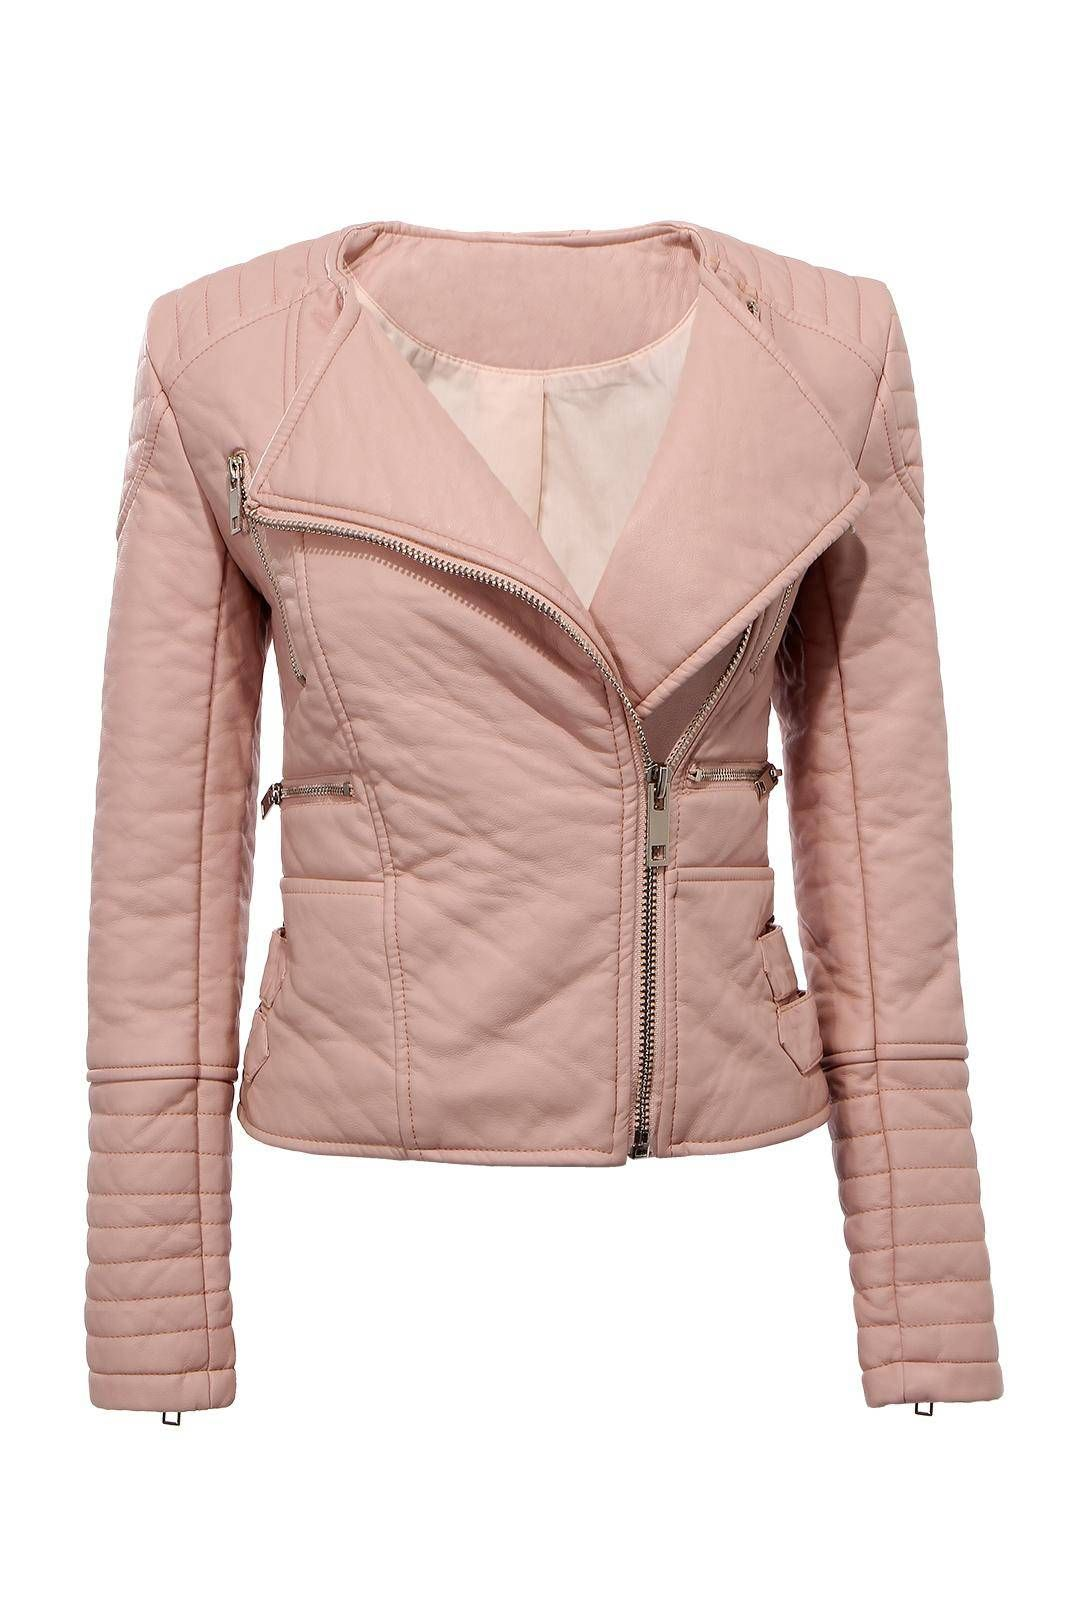 EXTRA 15 YOUR FIRST ORDER ON YONIS APP Leather jackets